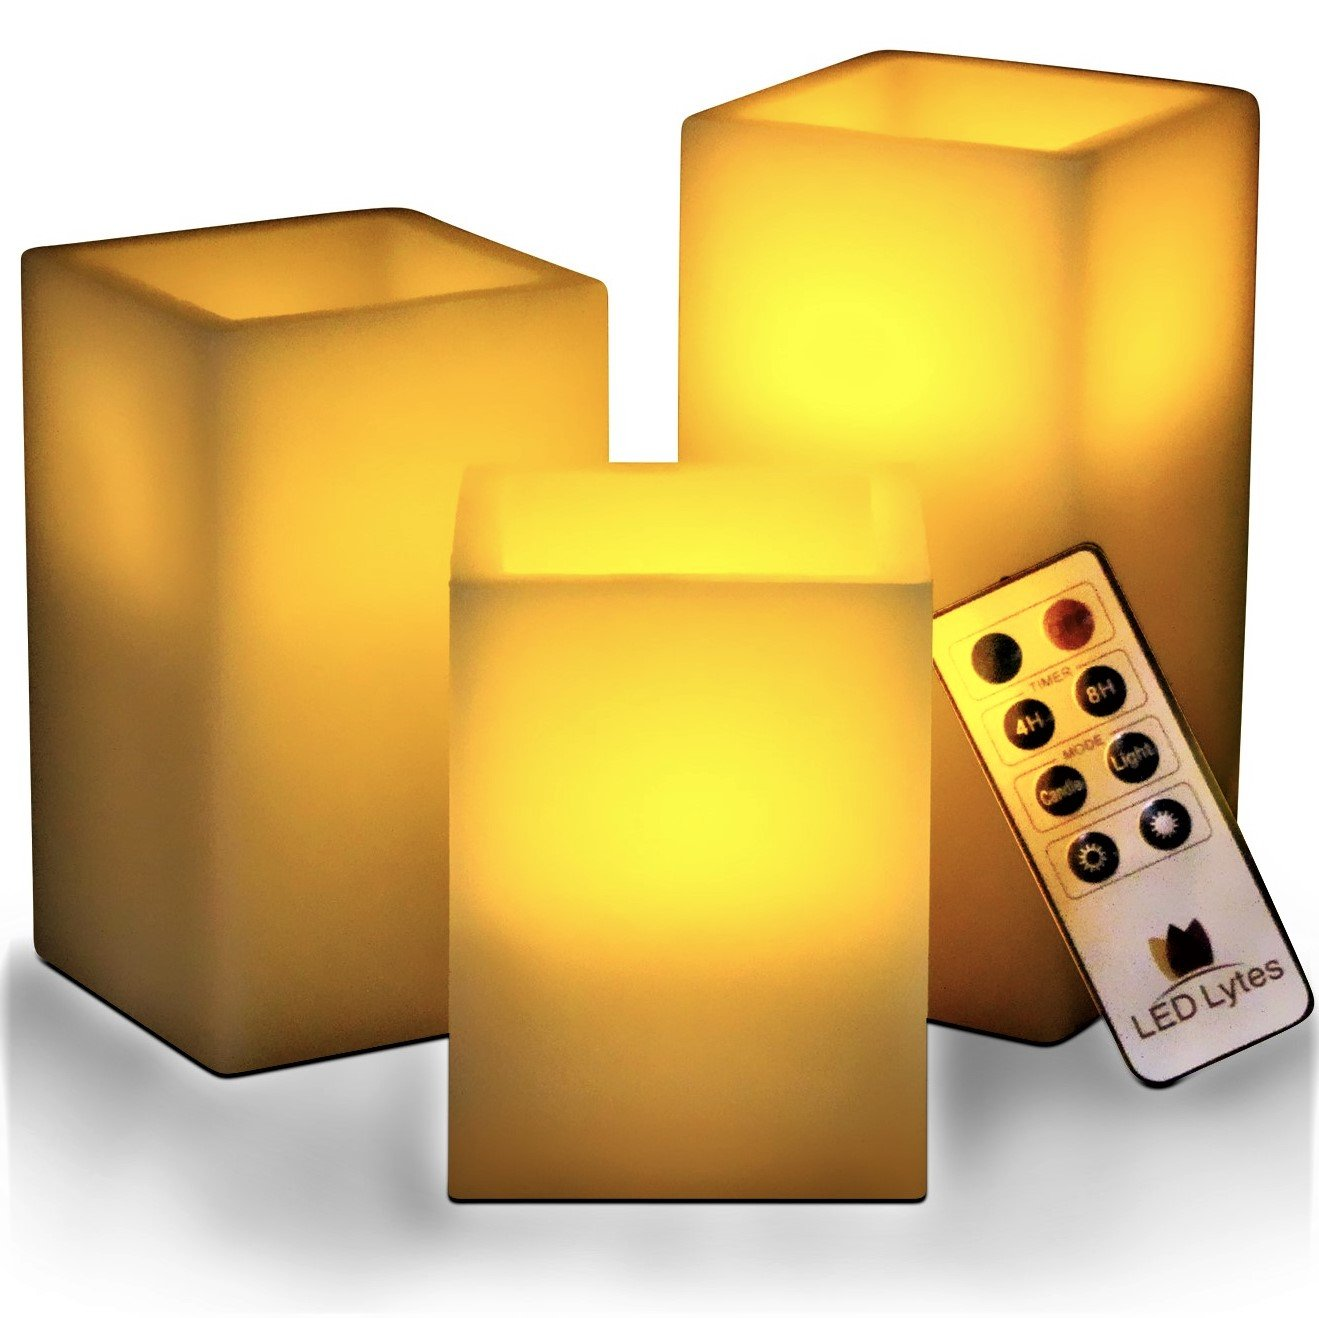 Flickering Flameless Candles Battery Operated - 3 SQUARE Ivory Wax and Amber yellow Flame, auto-off Timer Remote Control, Large fake Battery Powered Candles by LED Lytes, by LED Lytes